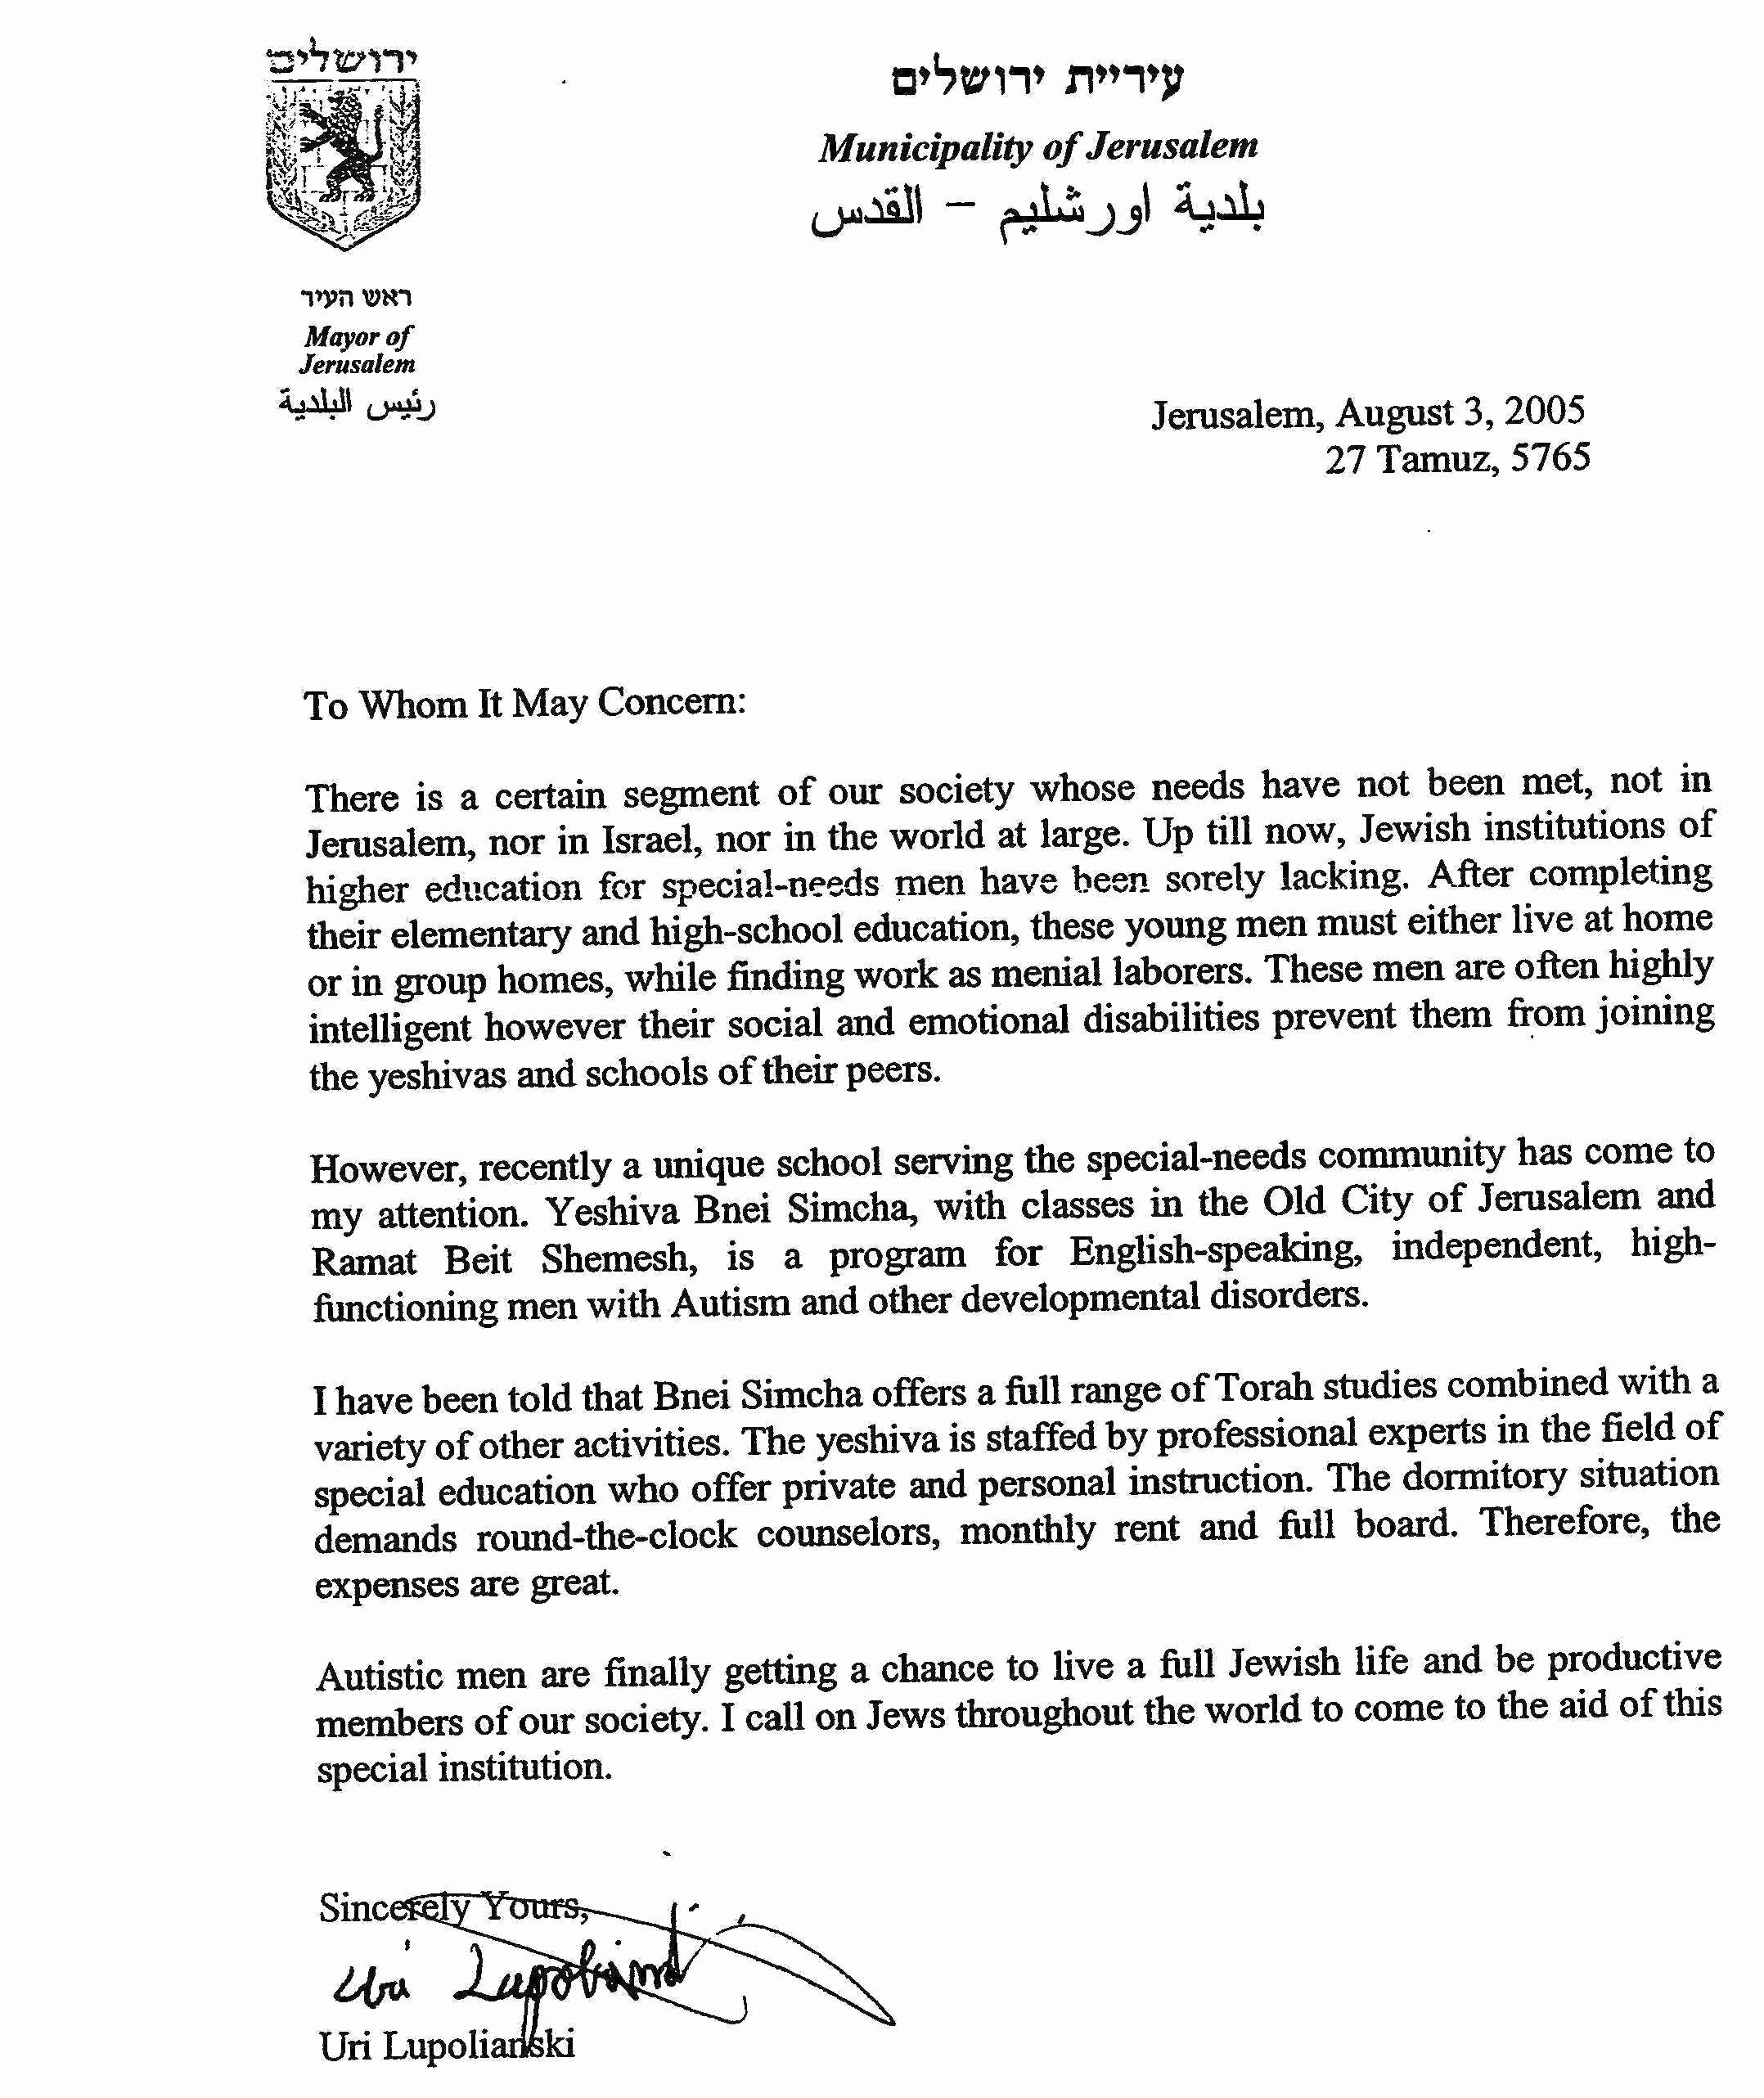 Parents Letter Of Recommendation Unique Student Reference Letter From Parent Character for Seeking